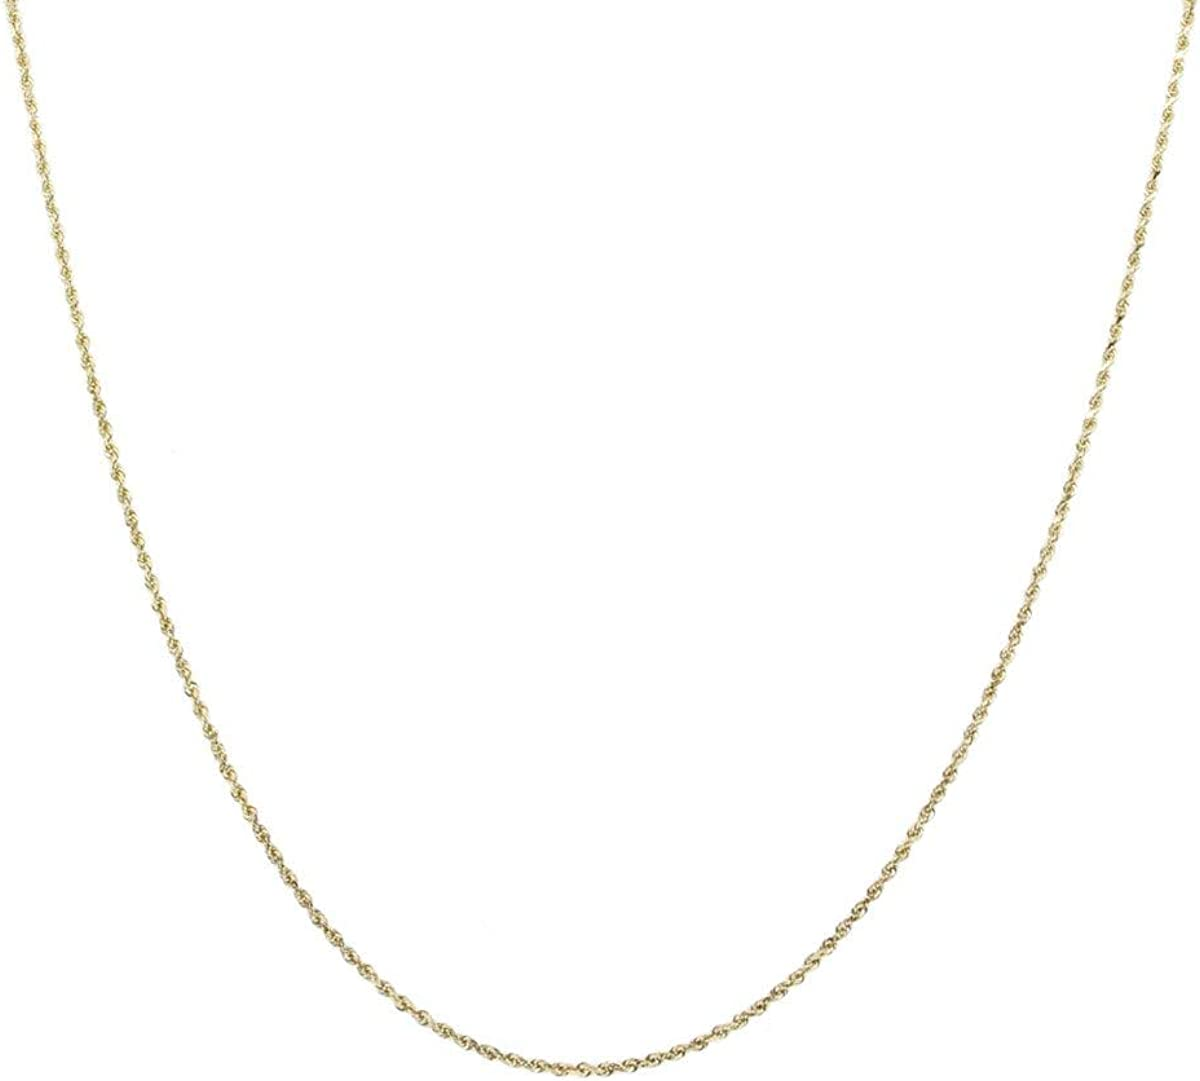 10K Gold 0.75MM Thin Oklahoma City Mall Max 51% OFF Rope Chain W Necklace- in Available Yellow